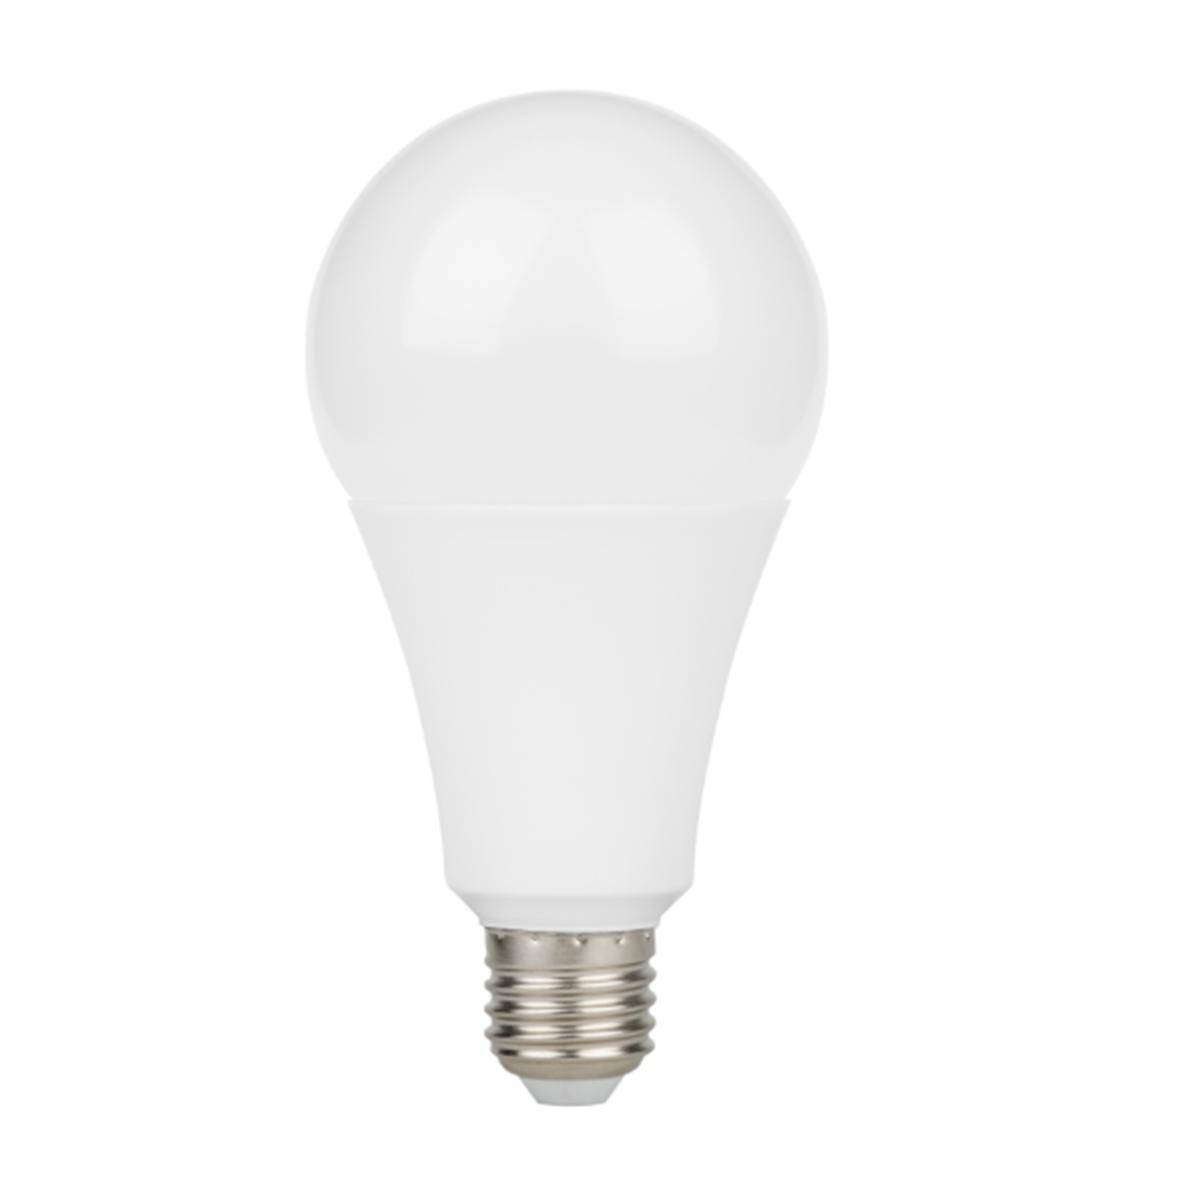 SILAMP Ampoule LED E27 18W A80 220V 230° - Blanc Froid 6000K - 8000K